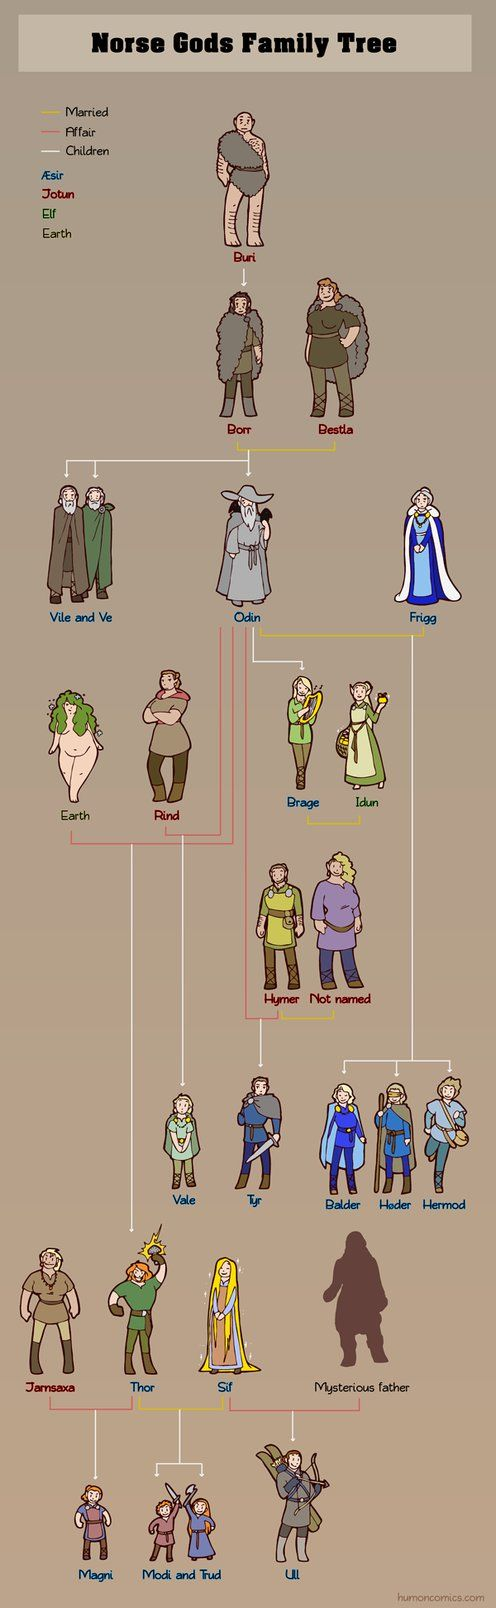 Norse Gods Family Tree by humon